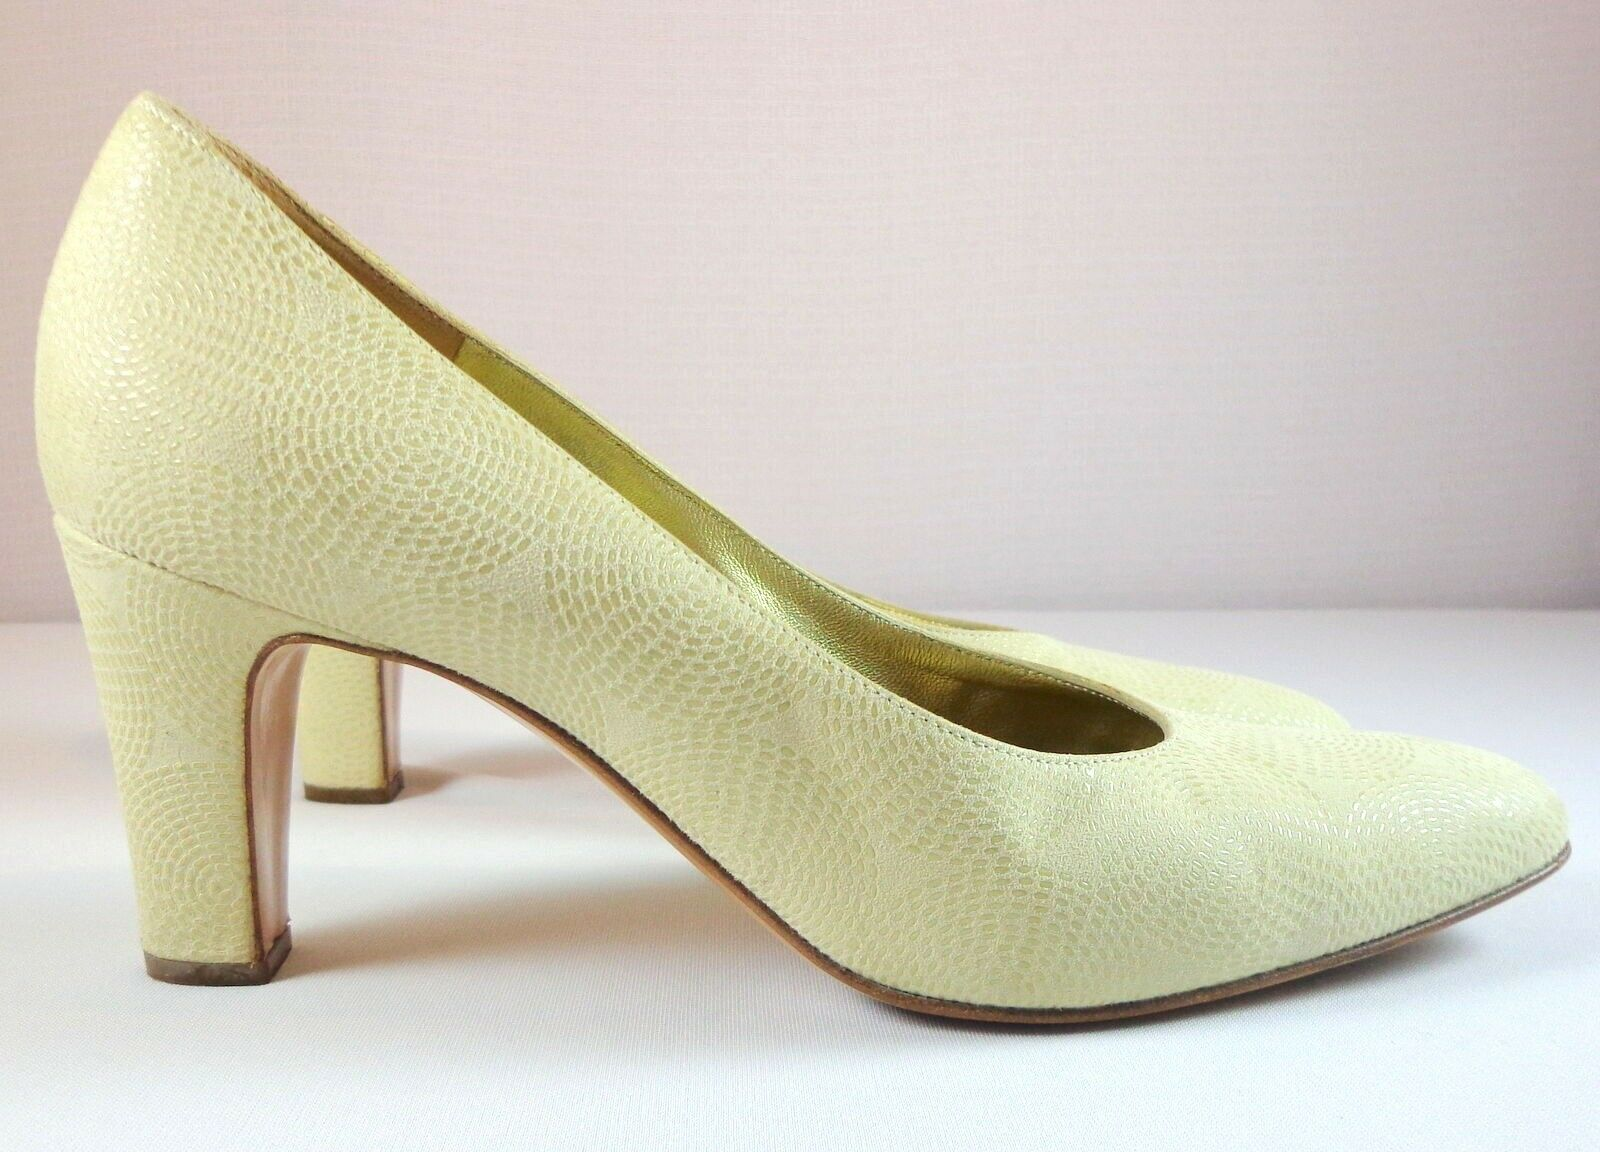 Bruno Magli Pumps Womens Beige Leather Heels Size 7.5 B Made in